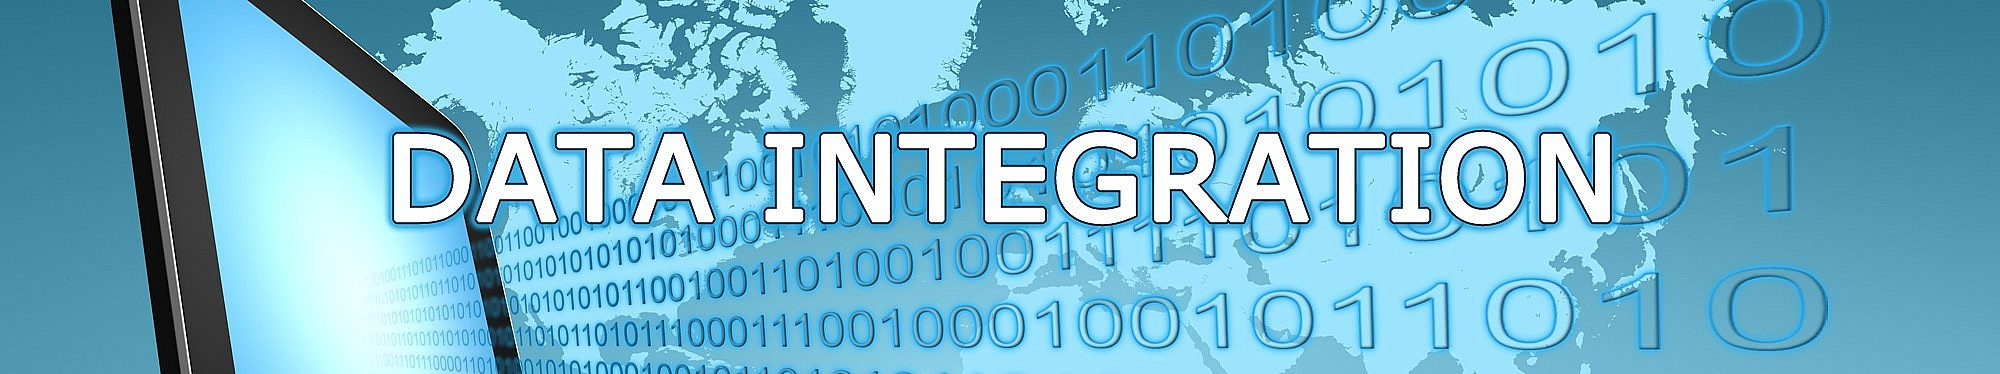 INTEGRATED PARTNER SOLUTIONS, INC.